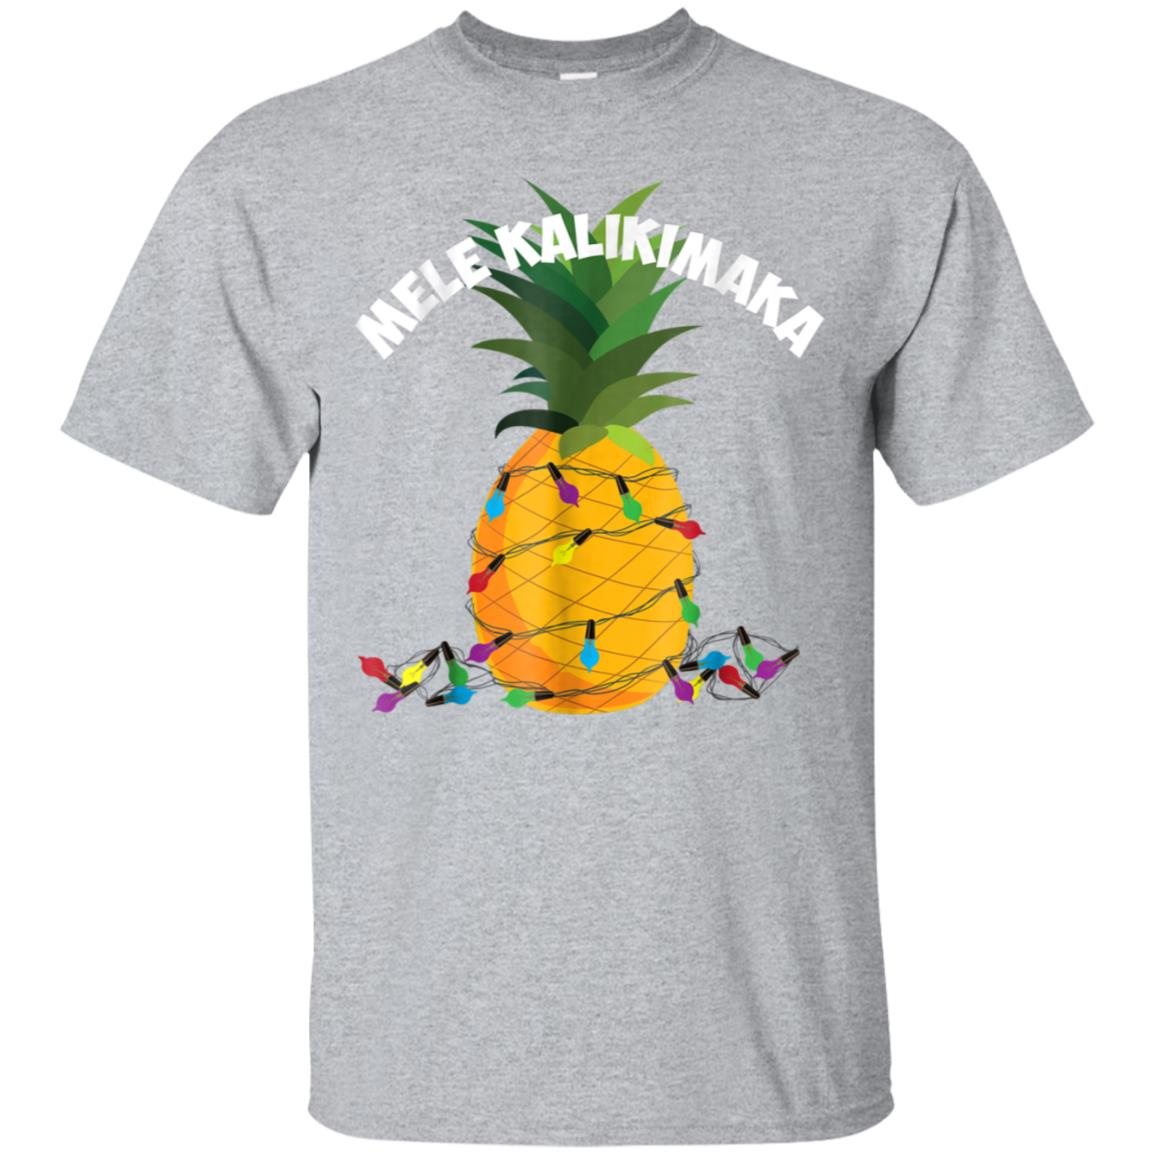 Mele Kalikimaka Shirt  Hawaiian X-Mas Pineapple Lights Gift 99promocode